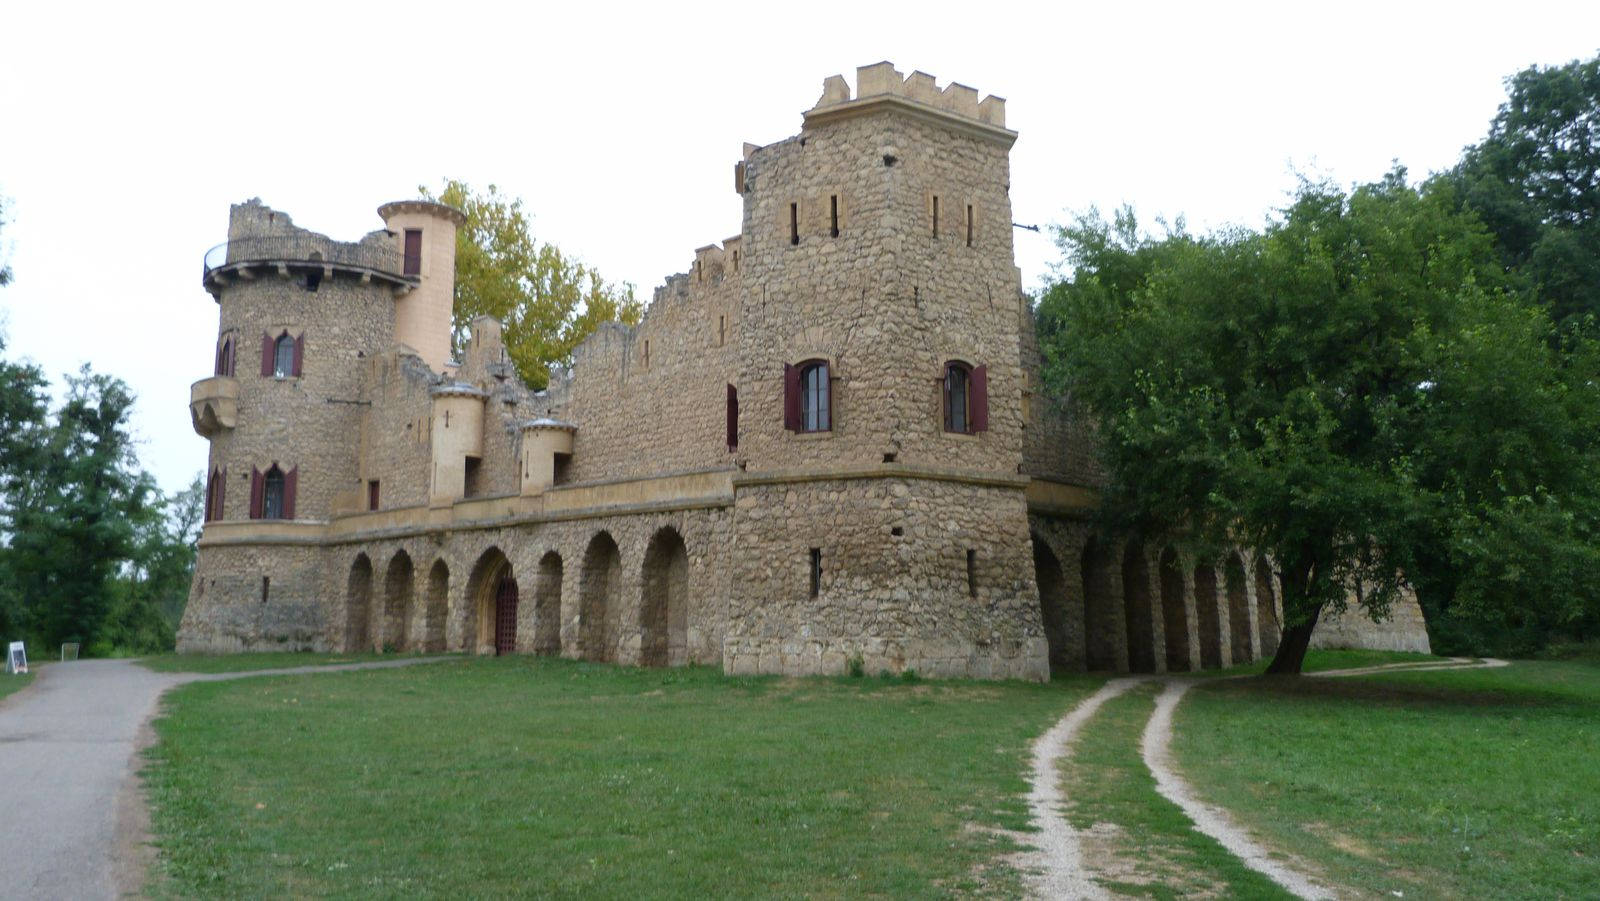 Januv castle (a purposely built ruin of a castle)